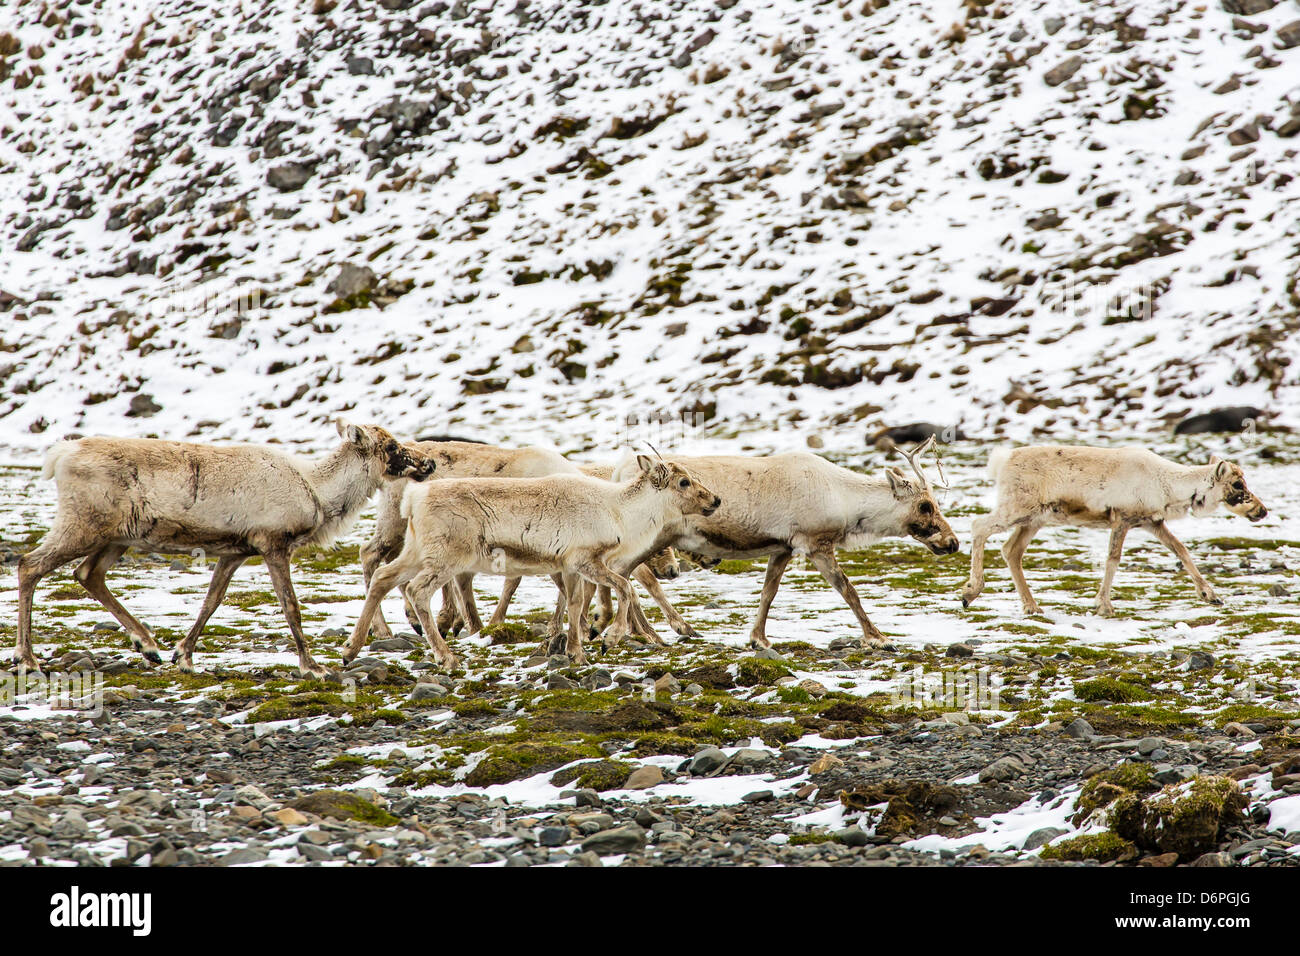 Reindeer (Rangifer tarandus) introduced from Norway, Stromness Bay, South Georgia Island, Polar Regions - Stock Image